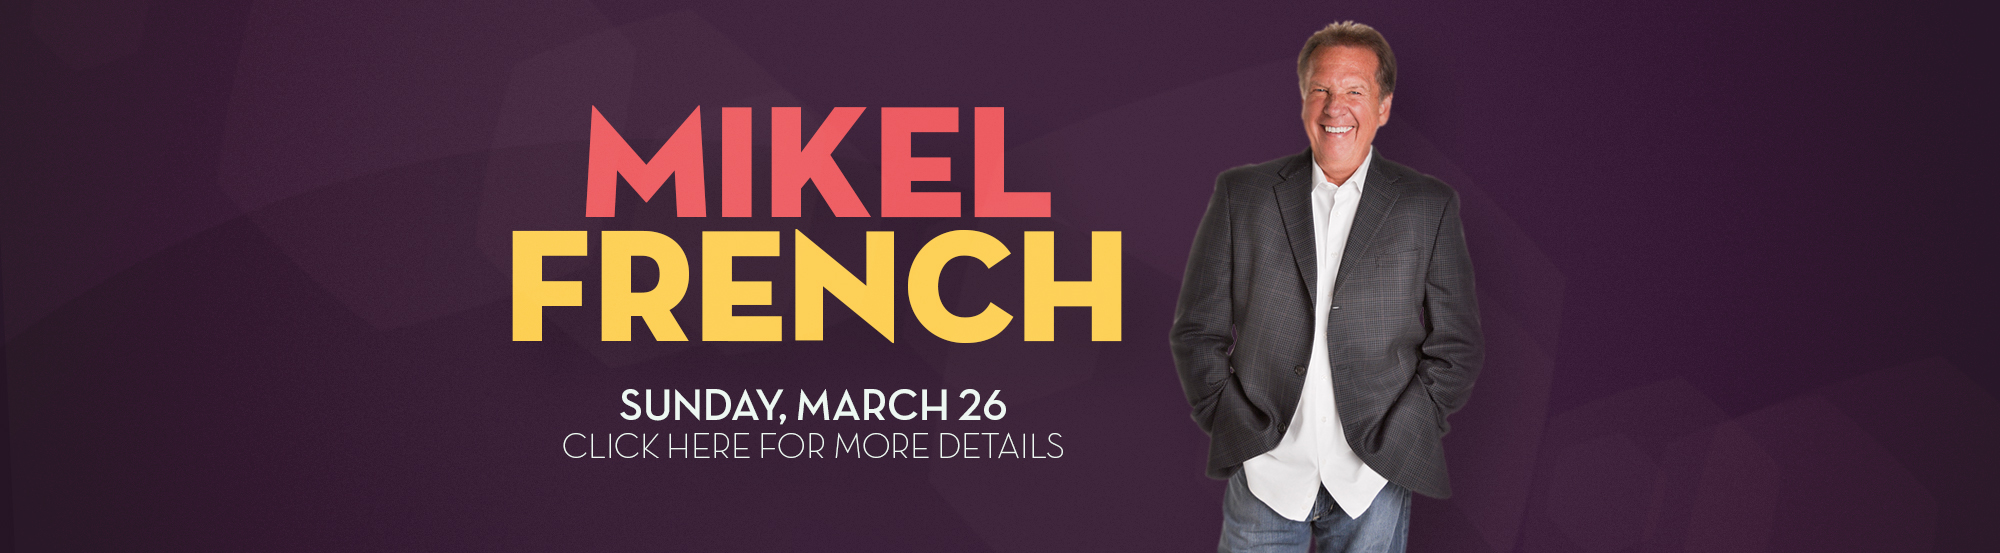 Mikel French main